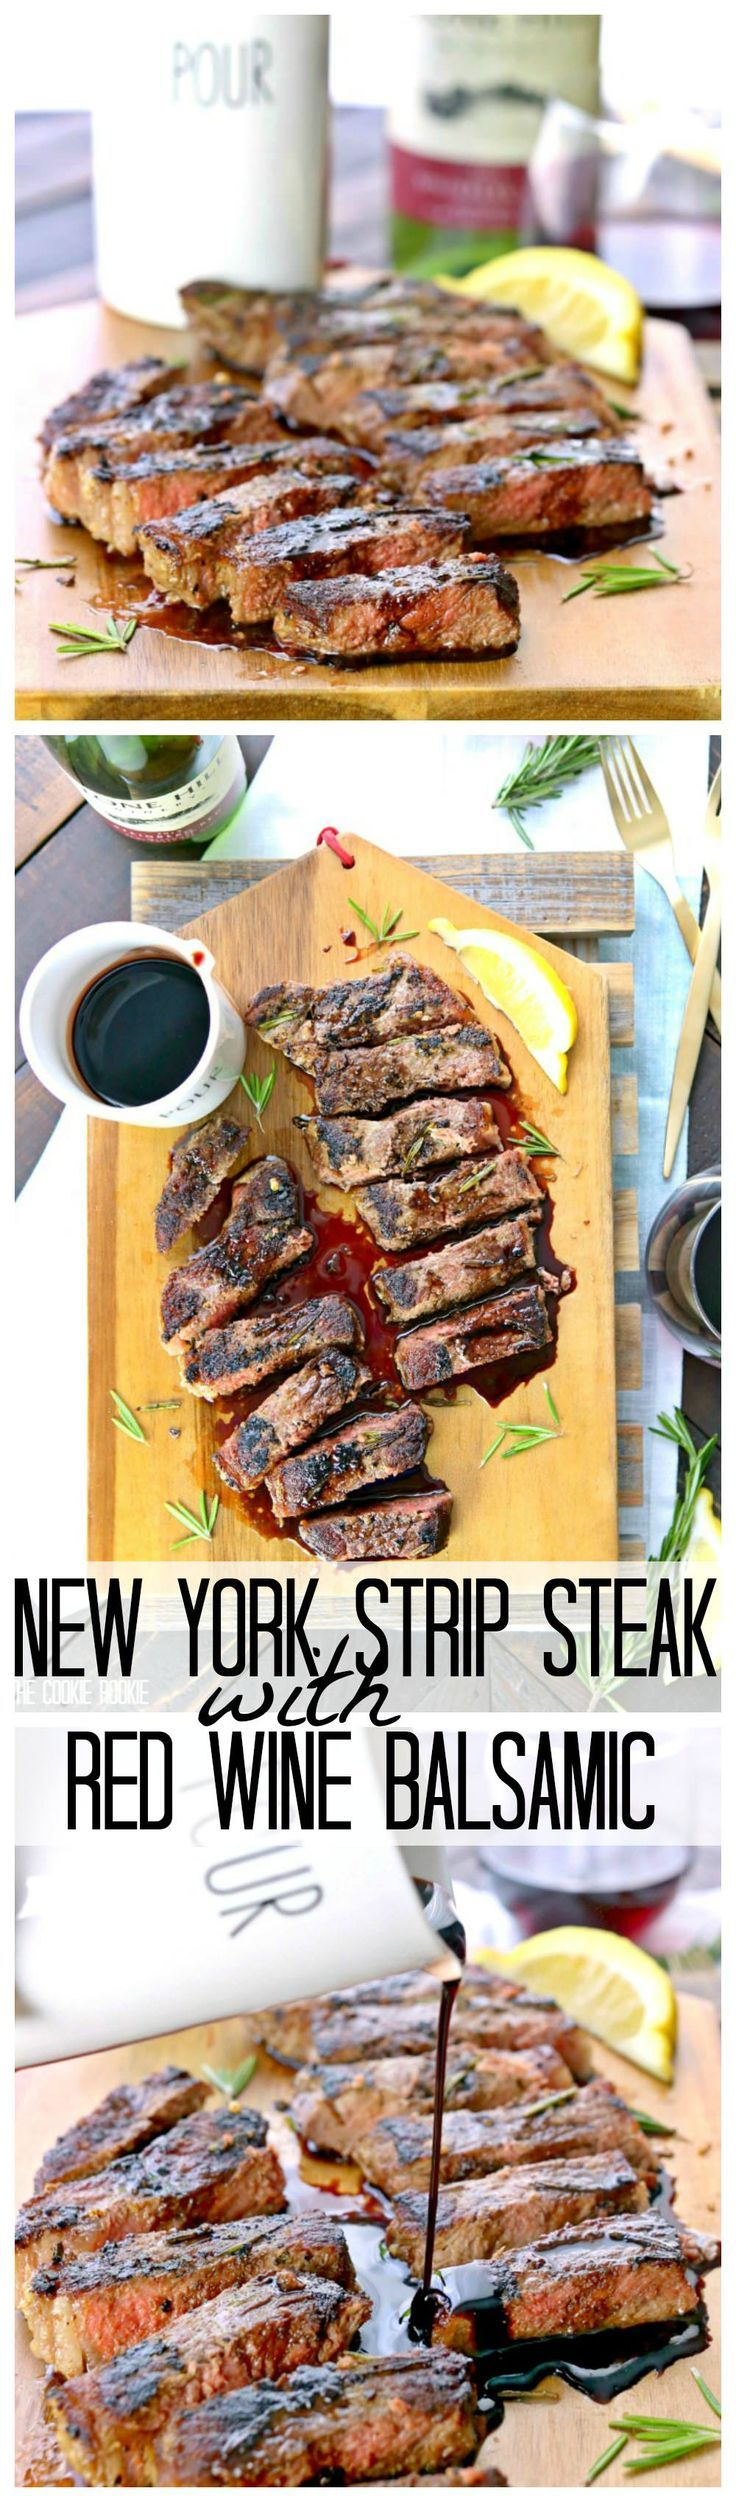 Seared New York Strip Steak with Red Wine Balsamic Reduction! Eat like a King or Queen at home with this easy and quick DELICIOUS dinner. THE BEST STEAK EVER.°°